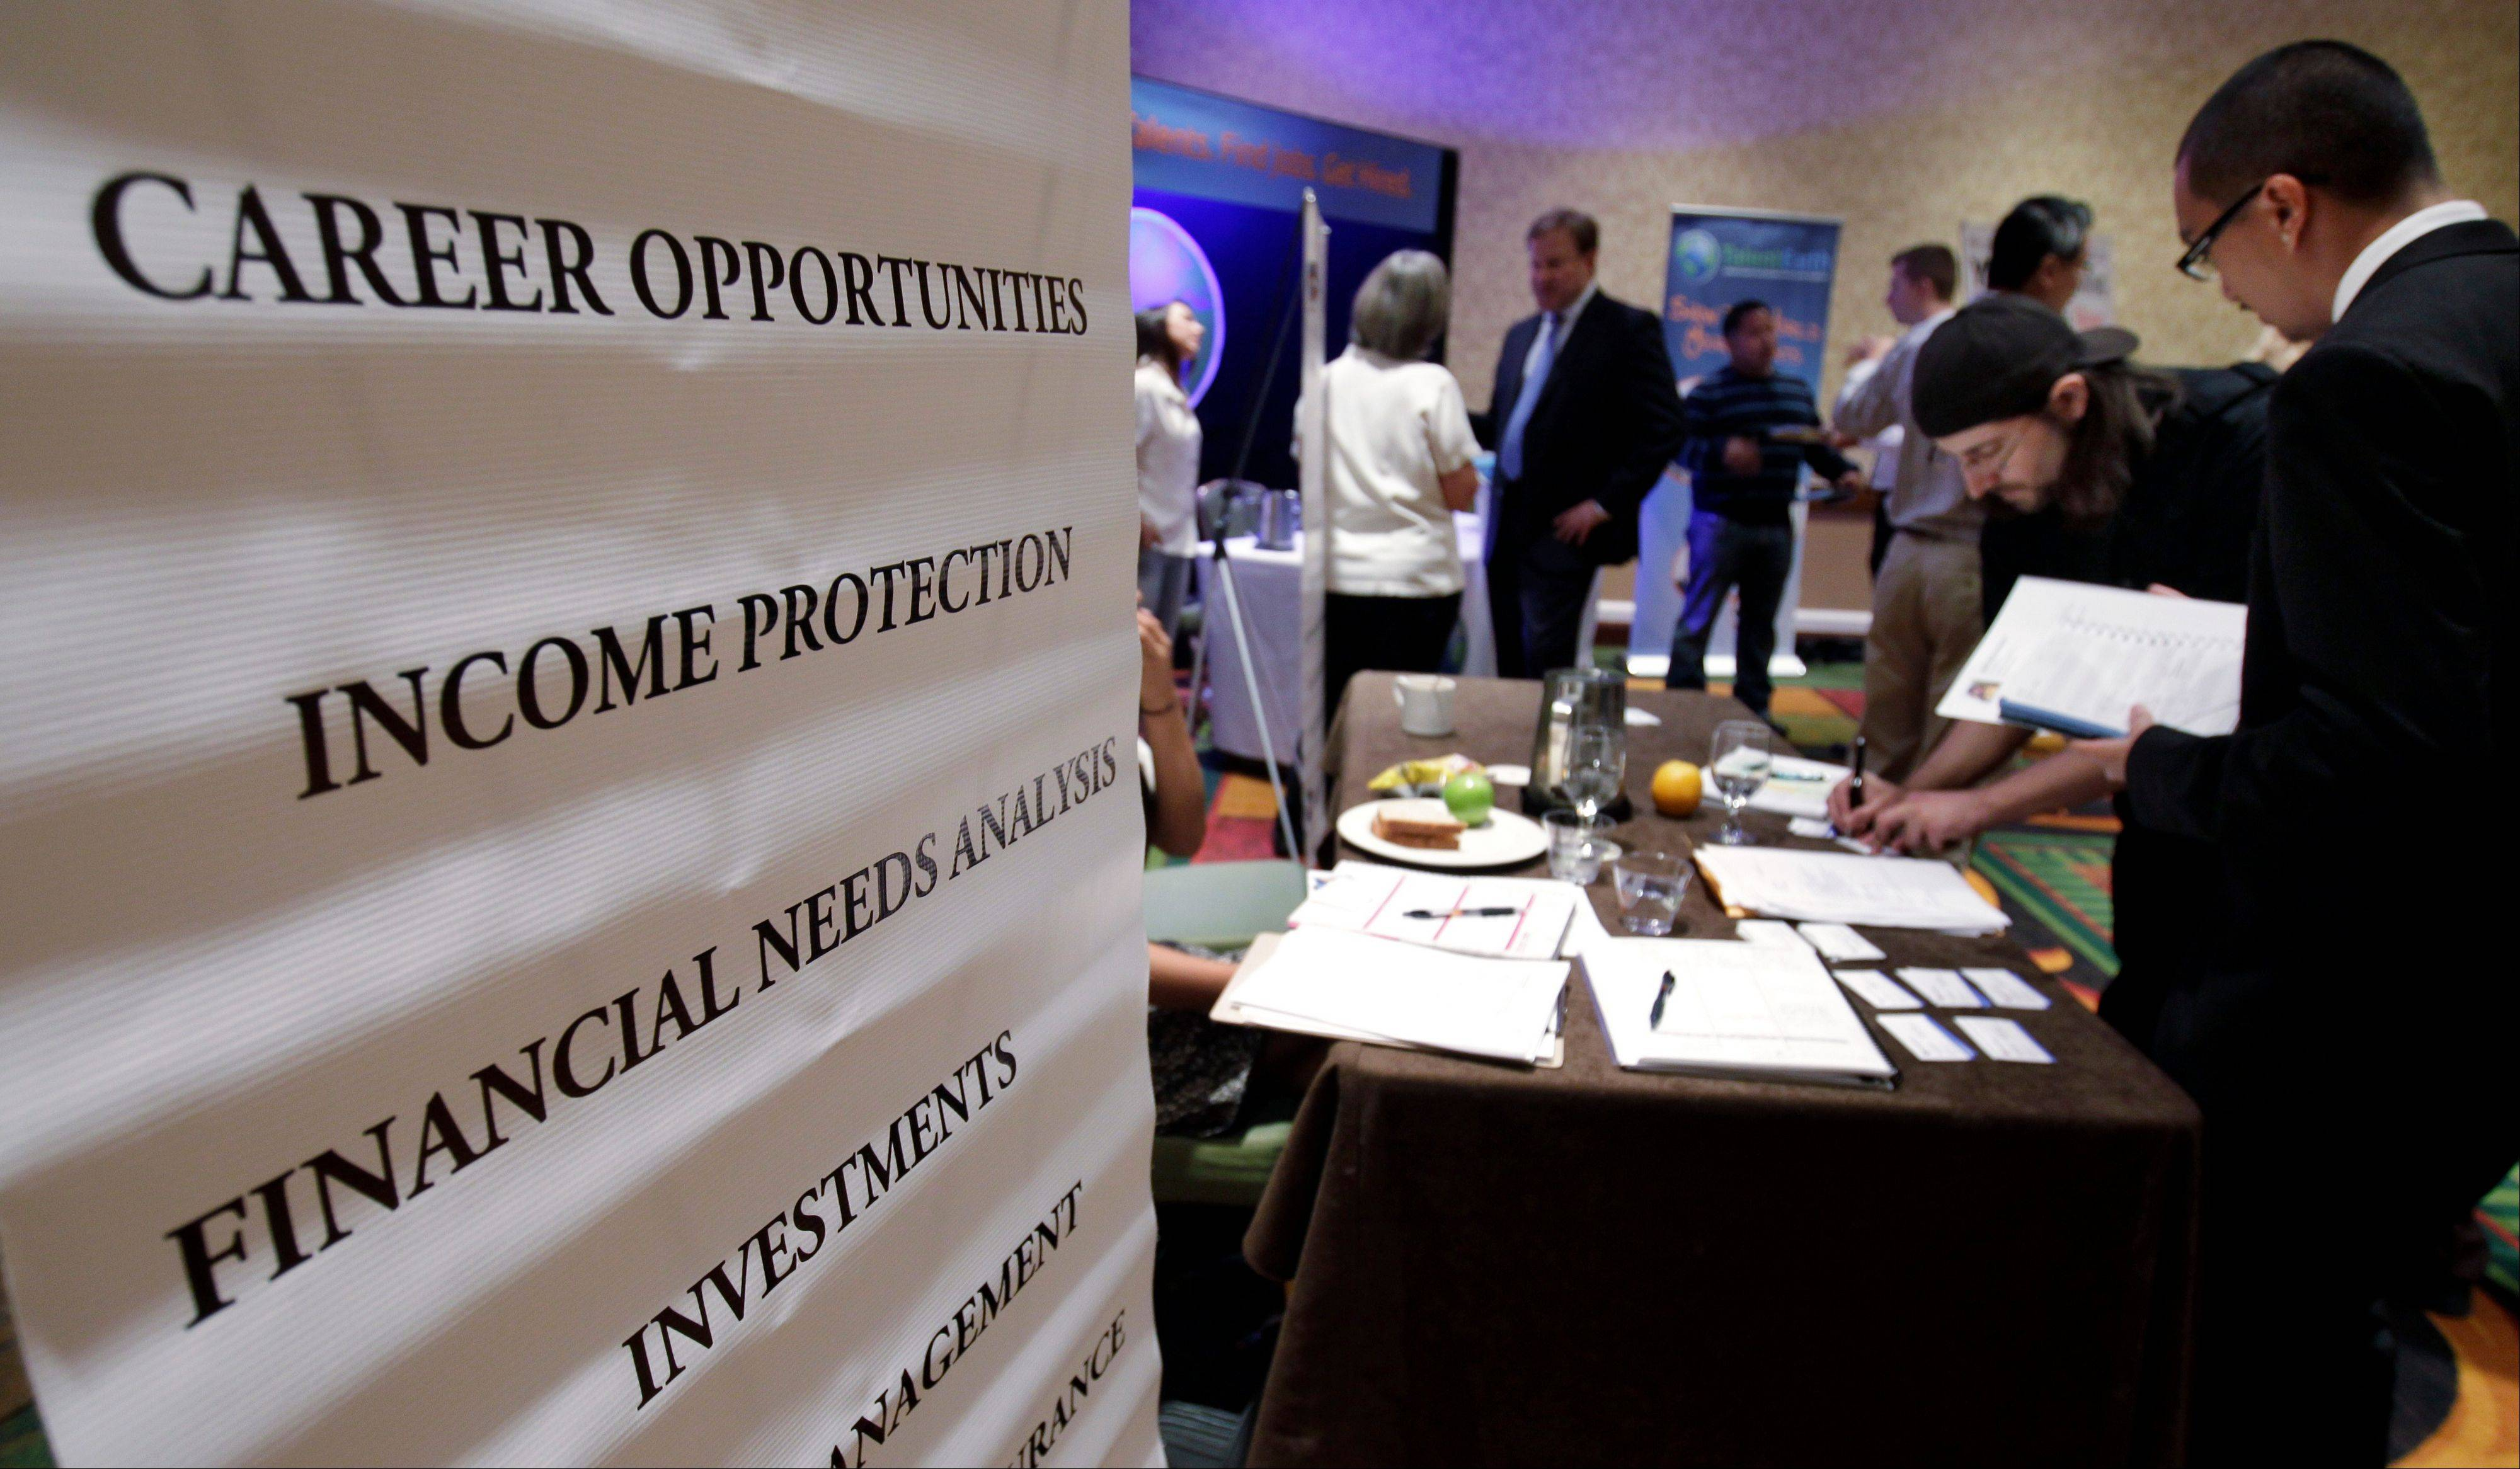 People looking for work talk at a Primerica job booth at a job fair in San Jose, Calif. U.S. hiring was likely sluggish in July for a fourth straight month, held back by slower economic growth and an uncertain outlook.